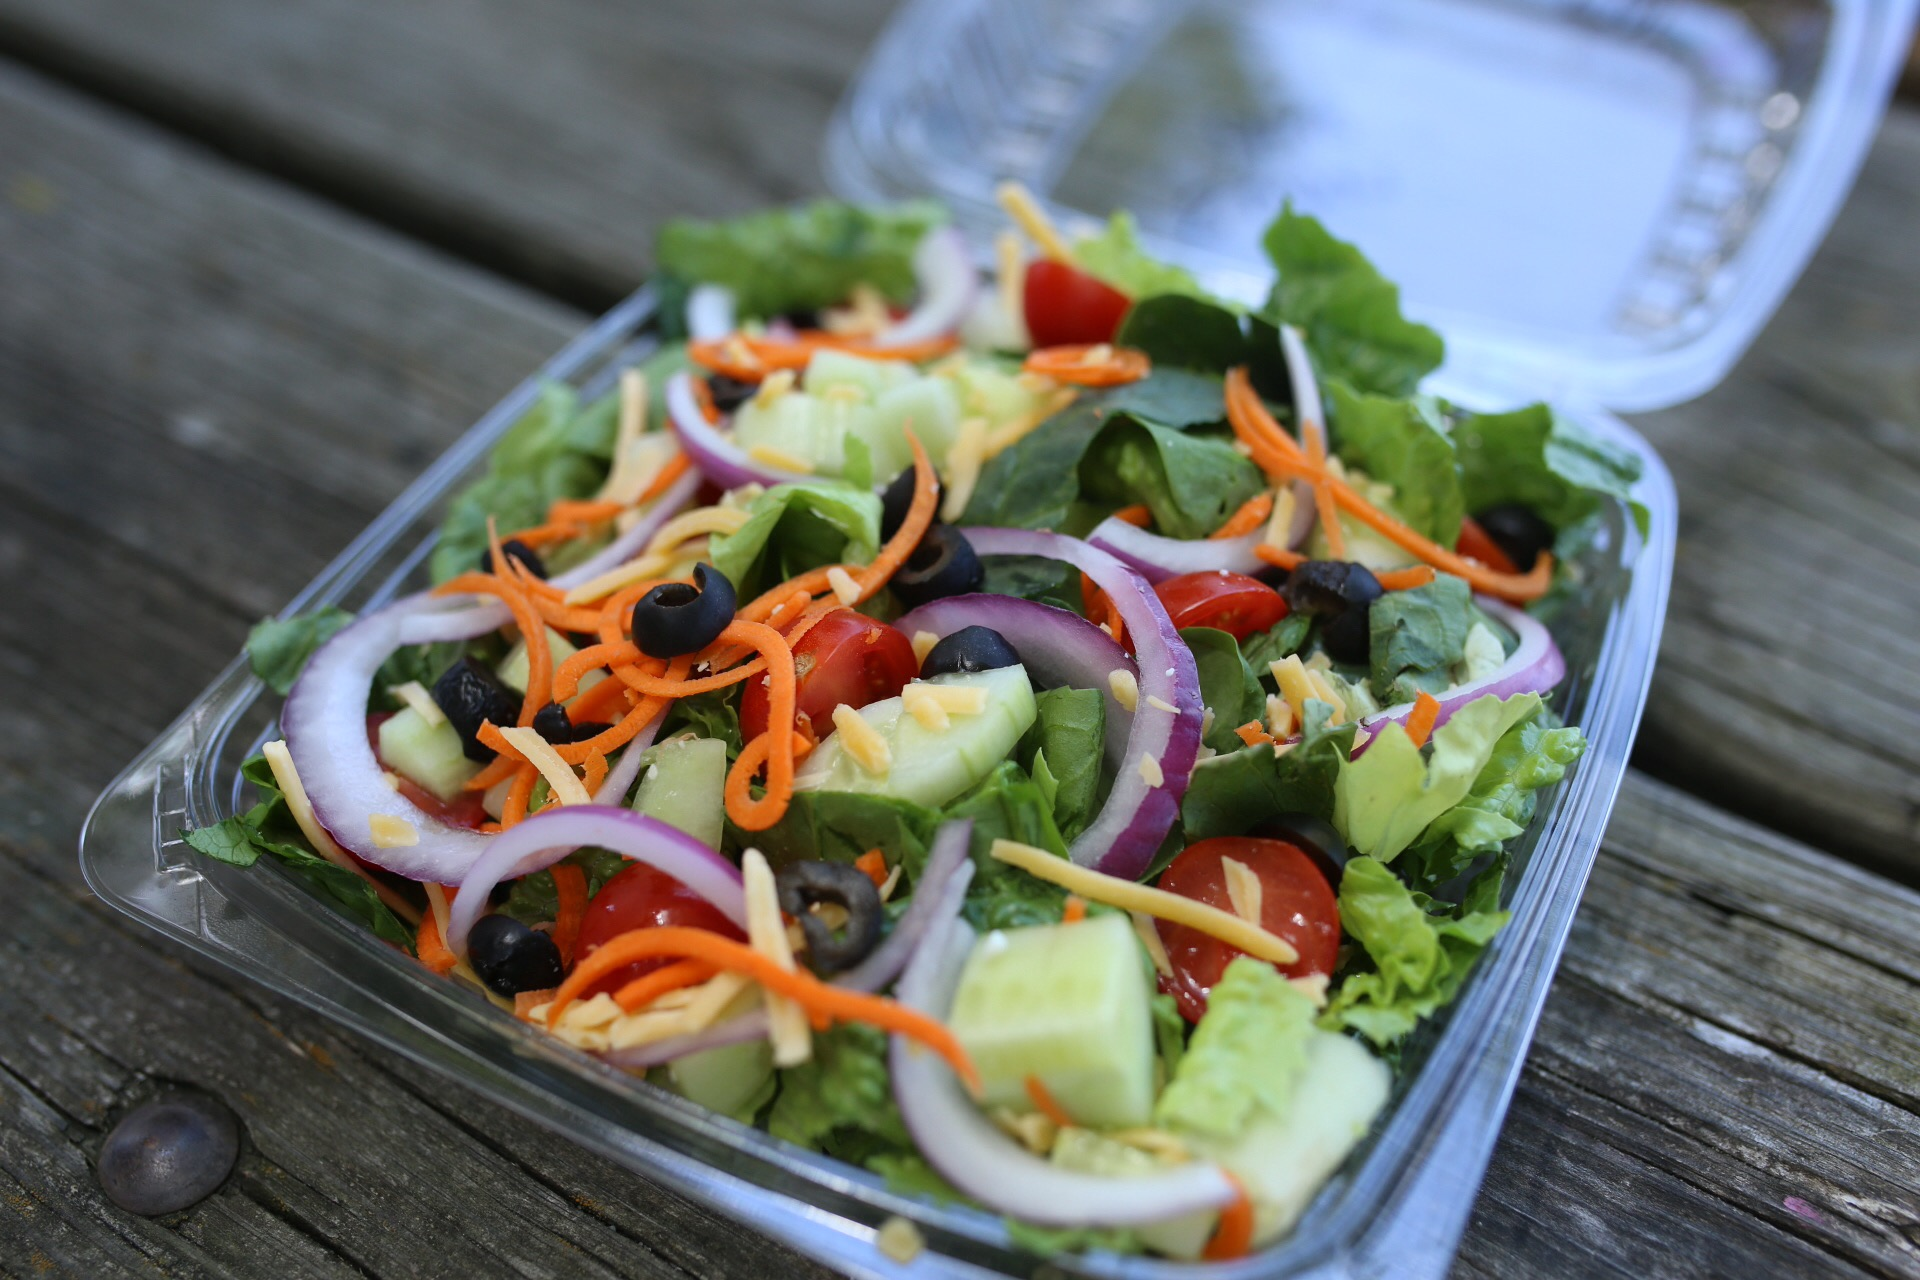 The Swan Dive is a more traditional salad with crunchy vegetables and a homemade ranch with fresh dill and parsley. Try it with our antibiotic/hormone free chicken!